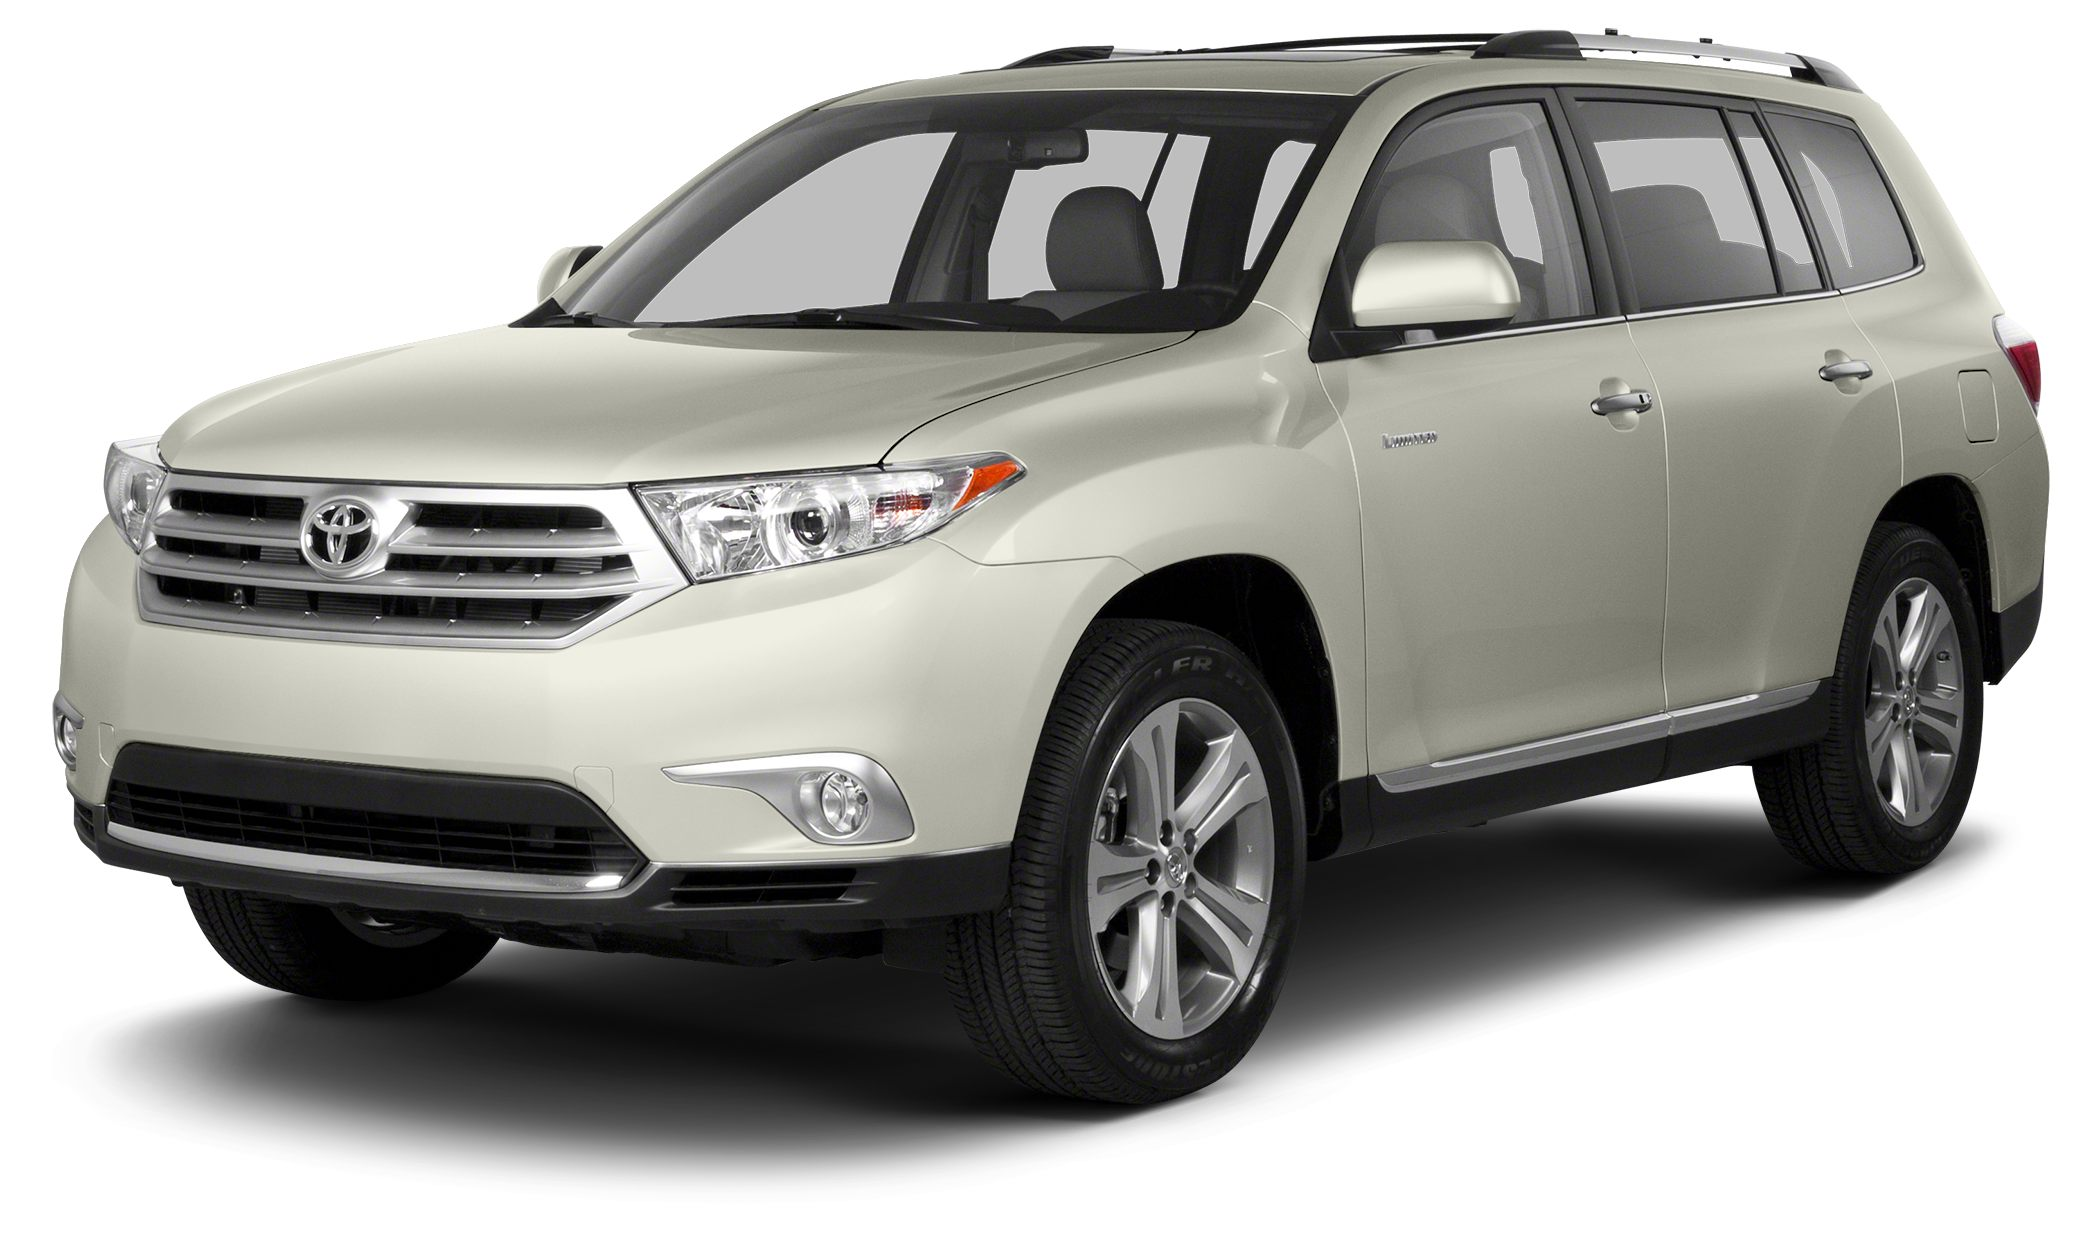 2013 Toyota Highlander Limited Limited trim CARFAX 1-Owner ONLY 26875 Miles REDUCED FROM 3478